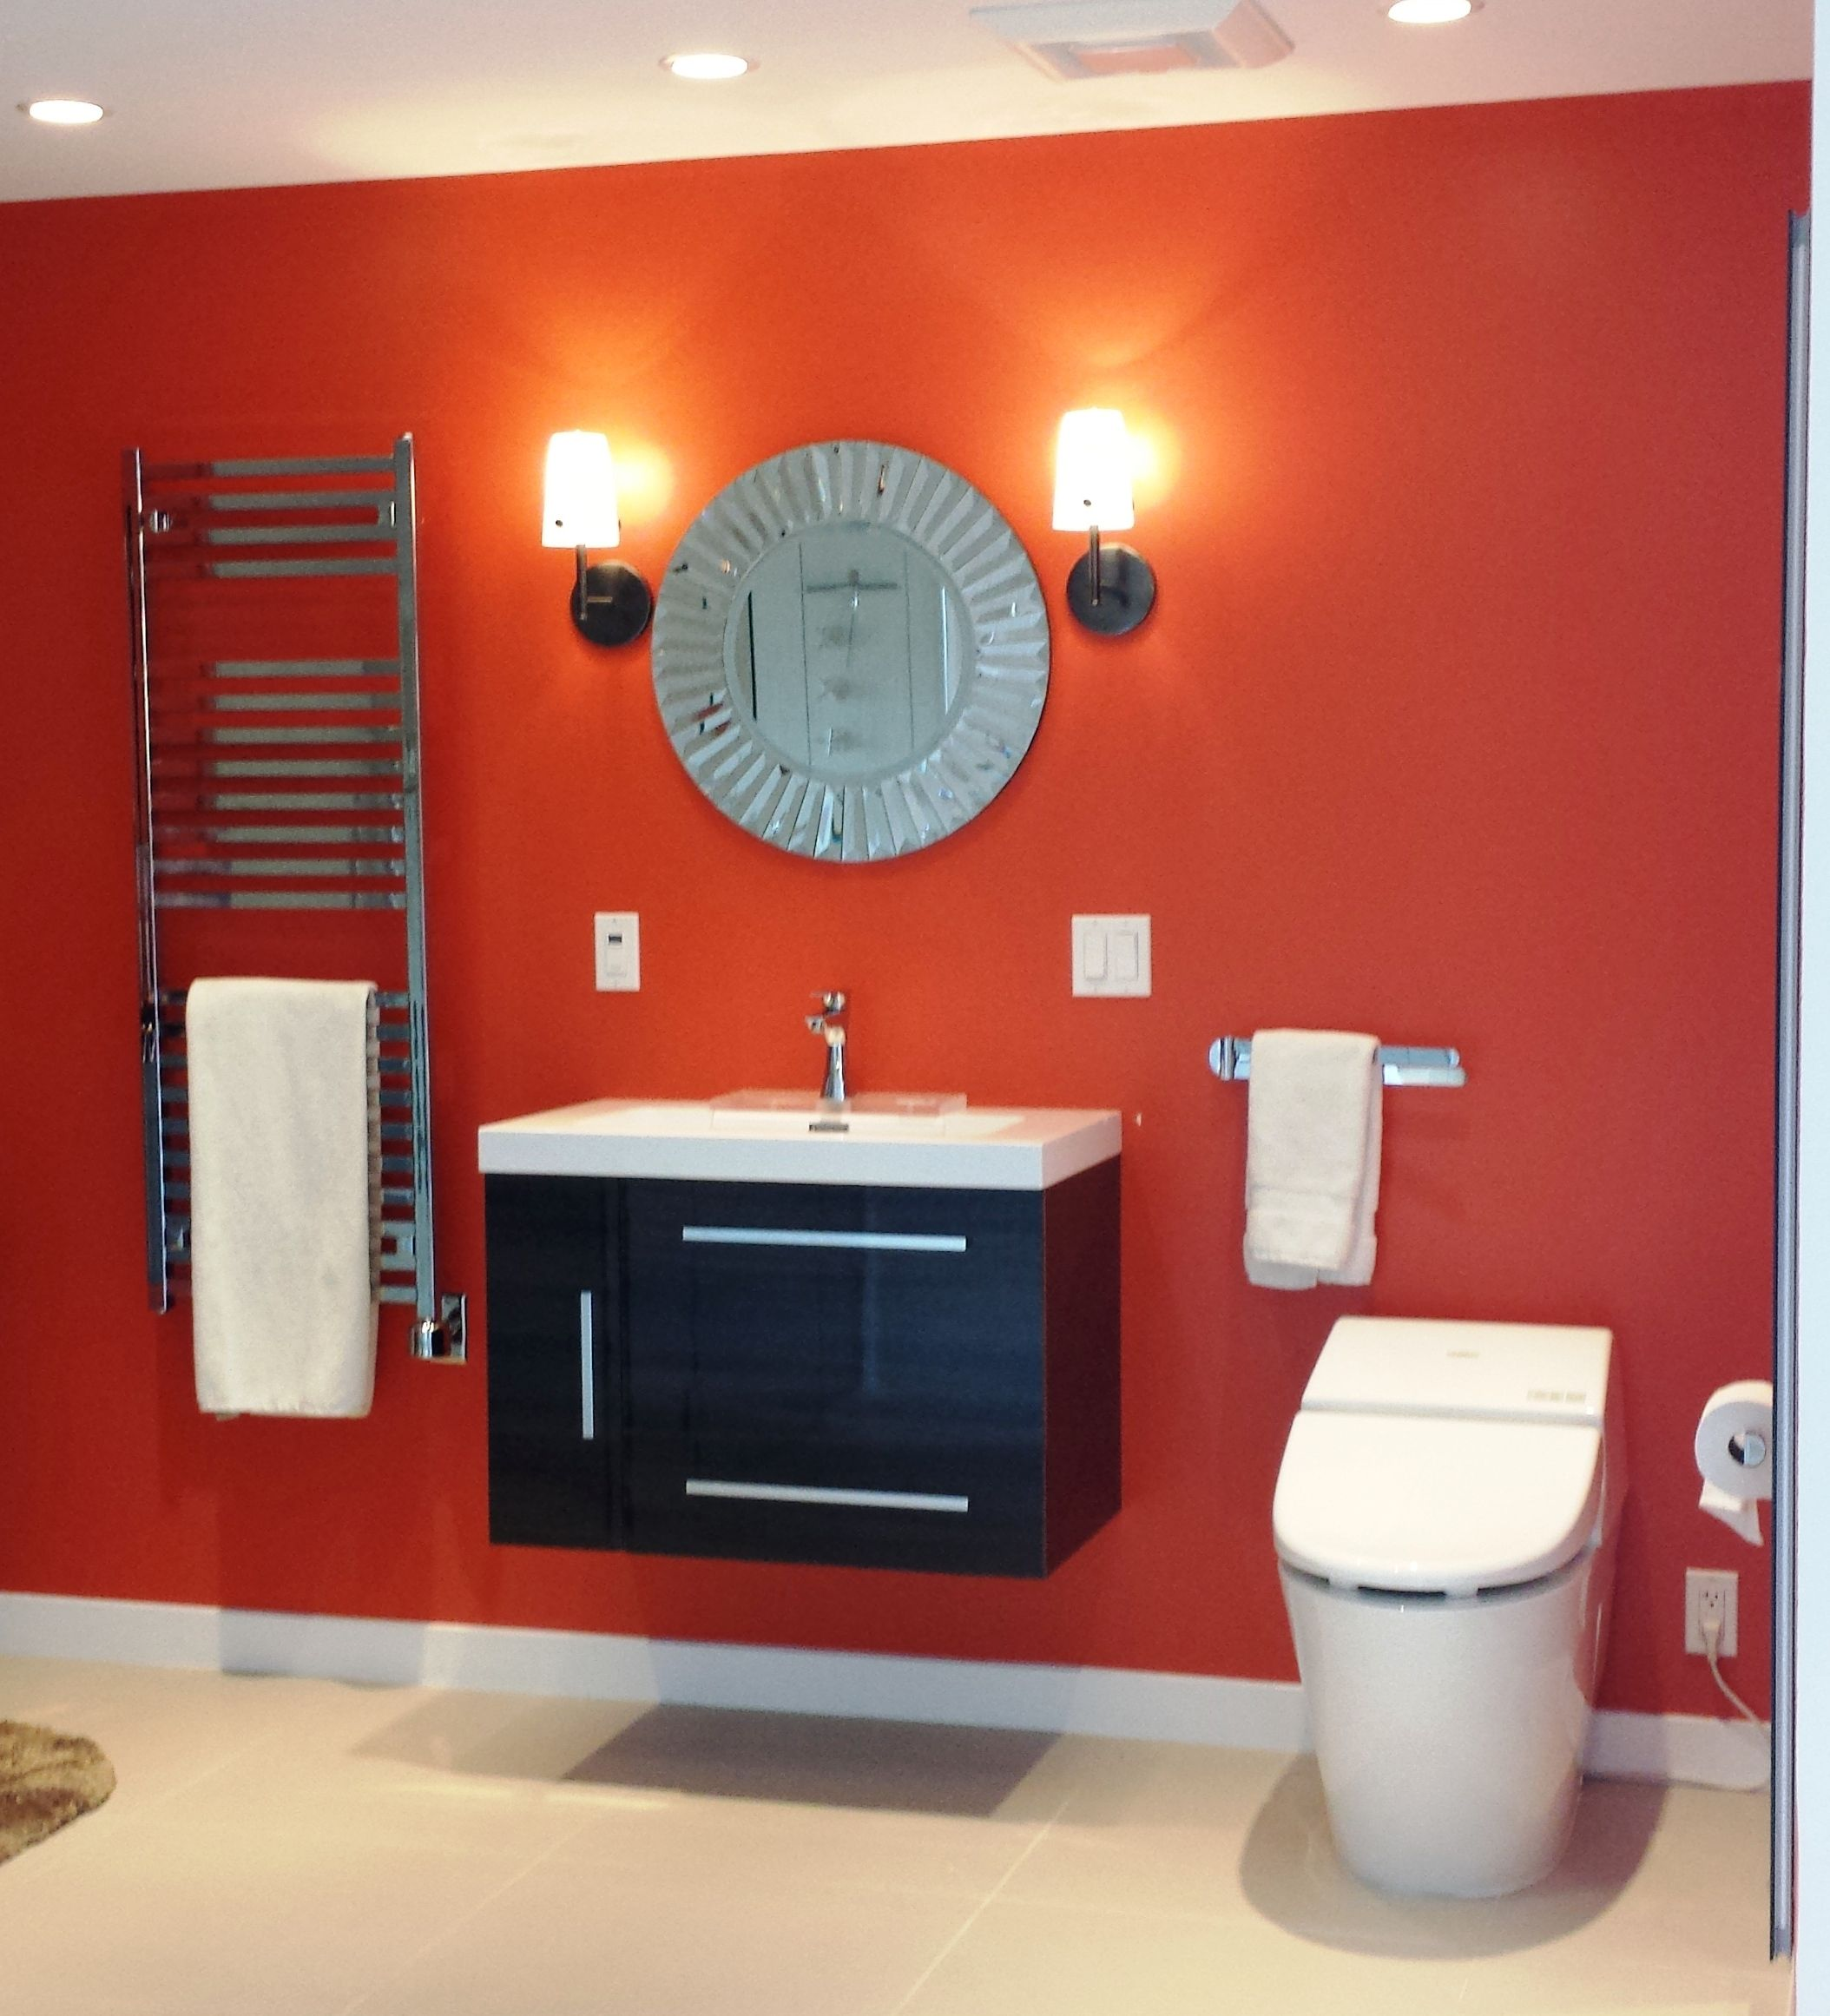 x pedestal sink commodes and the lavatory of neorest soiree copper toto kbis pressroom undermount valve best contemporary expands image faucet shower bidet vanity cheap toilet suite vessel modern size seats reviews toilets ideas sinks wall bathroom plumbing full lav